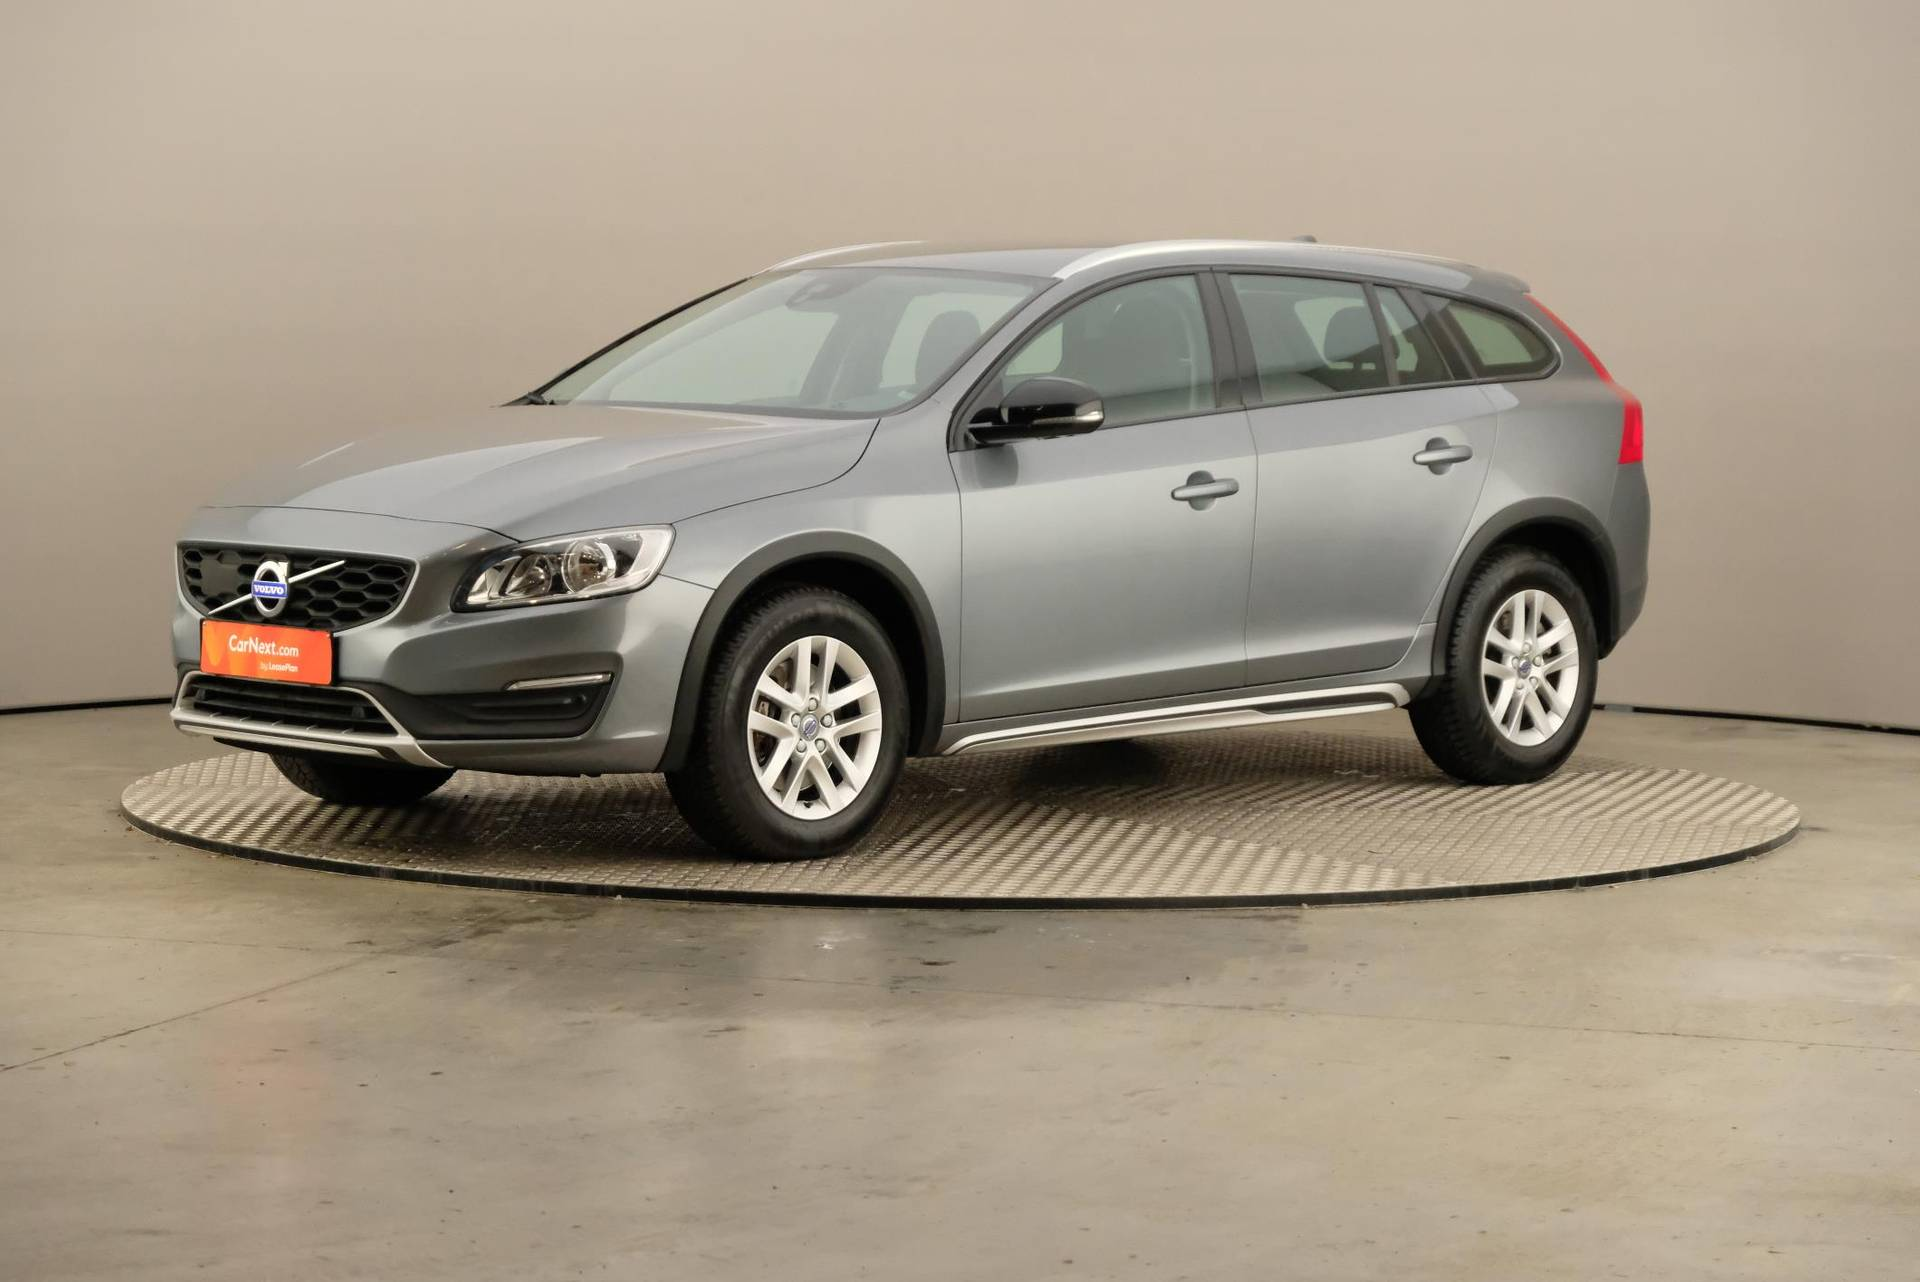 Volvo V60 2.0 D3 Kinetic Geartronic GPS PDC CRUISE CONTROL, 360-image0